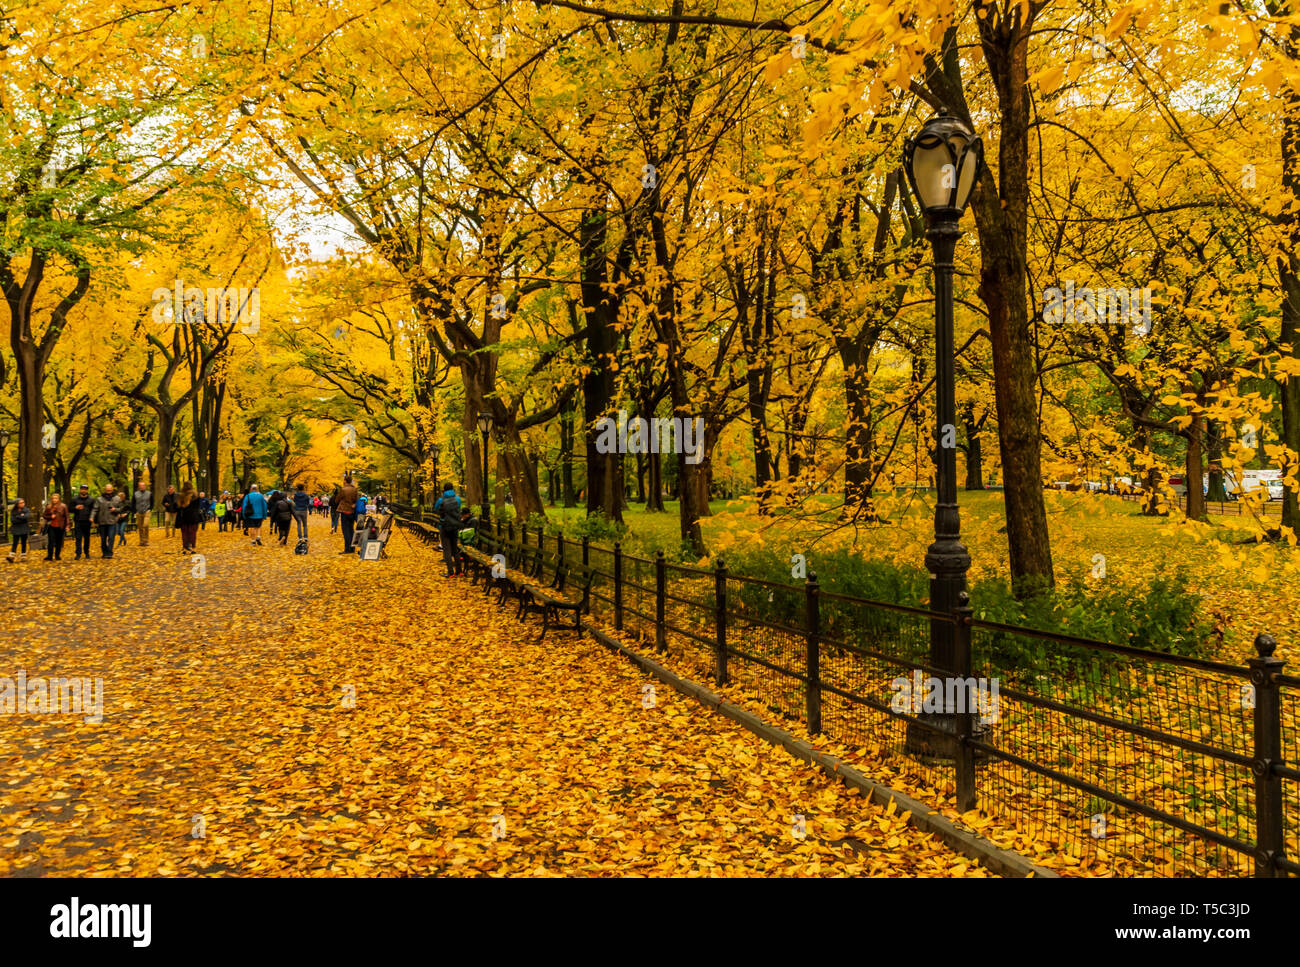 The famous Literacy Walk in Central Park - Stock Image